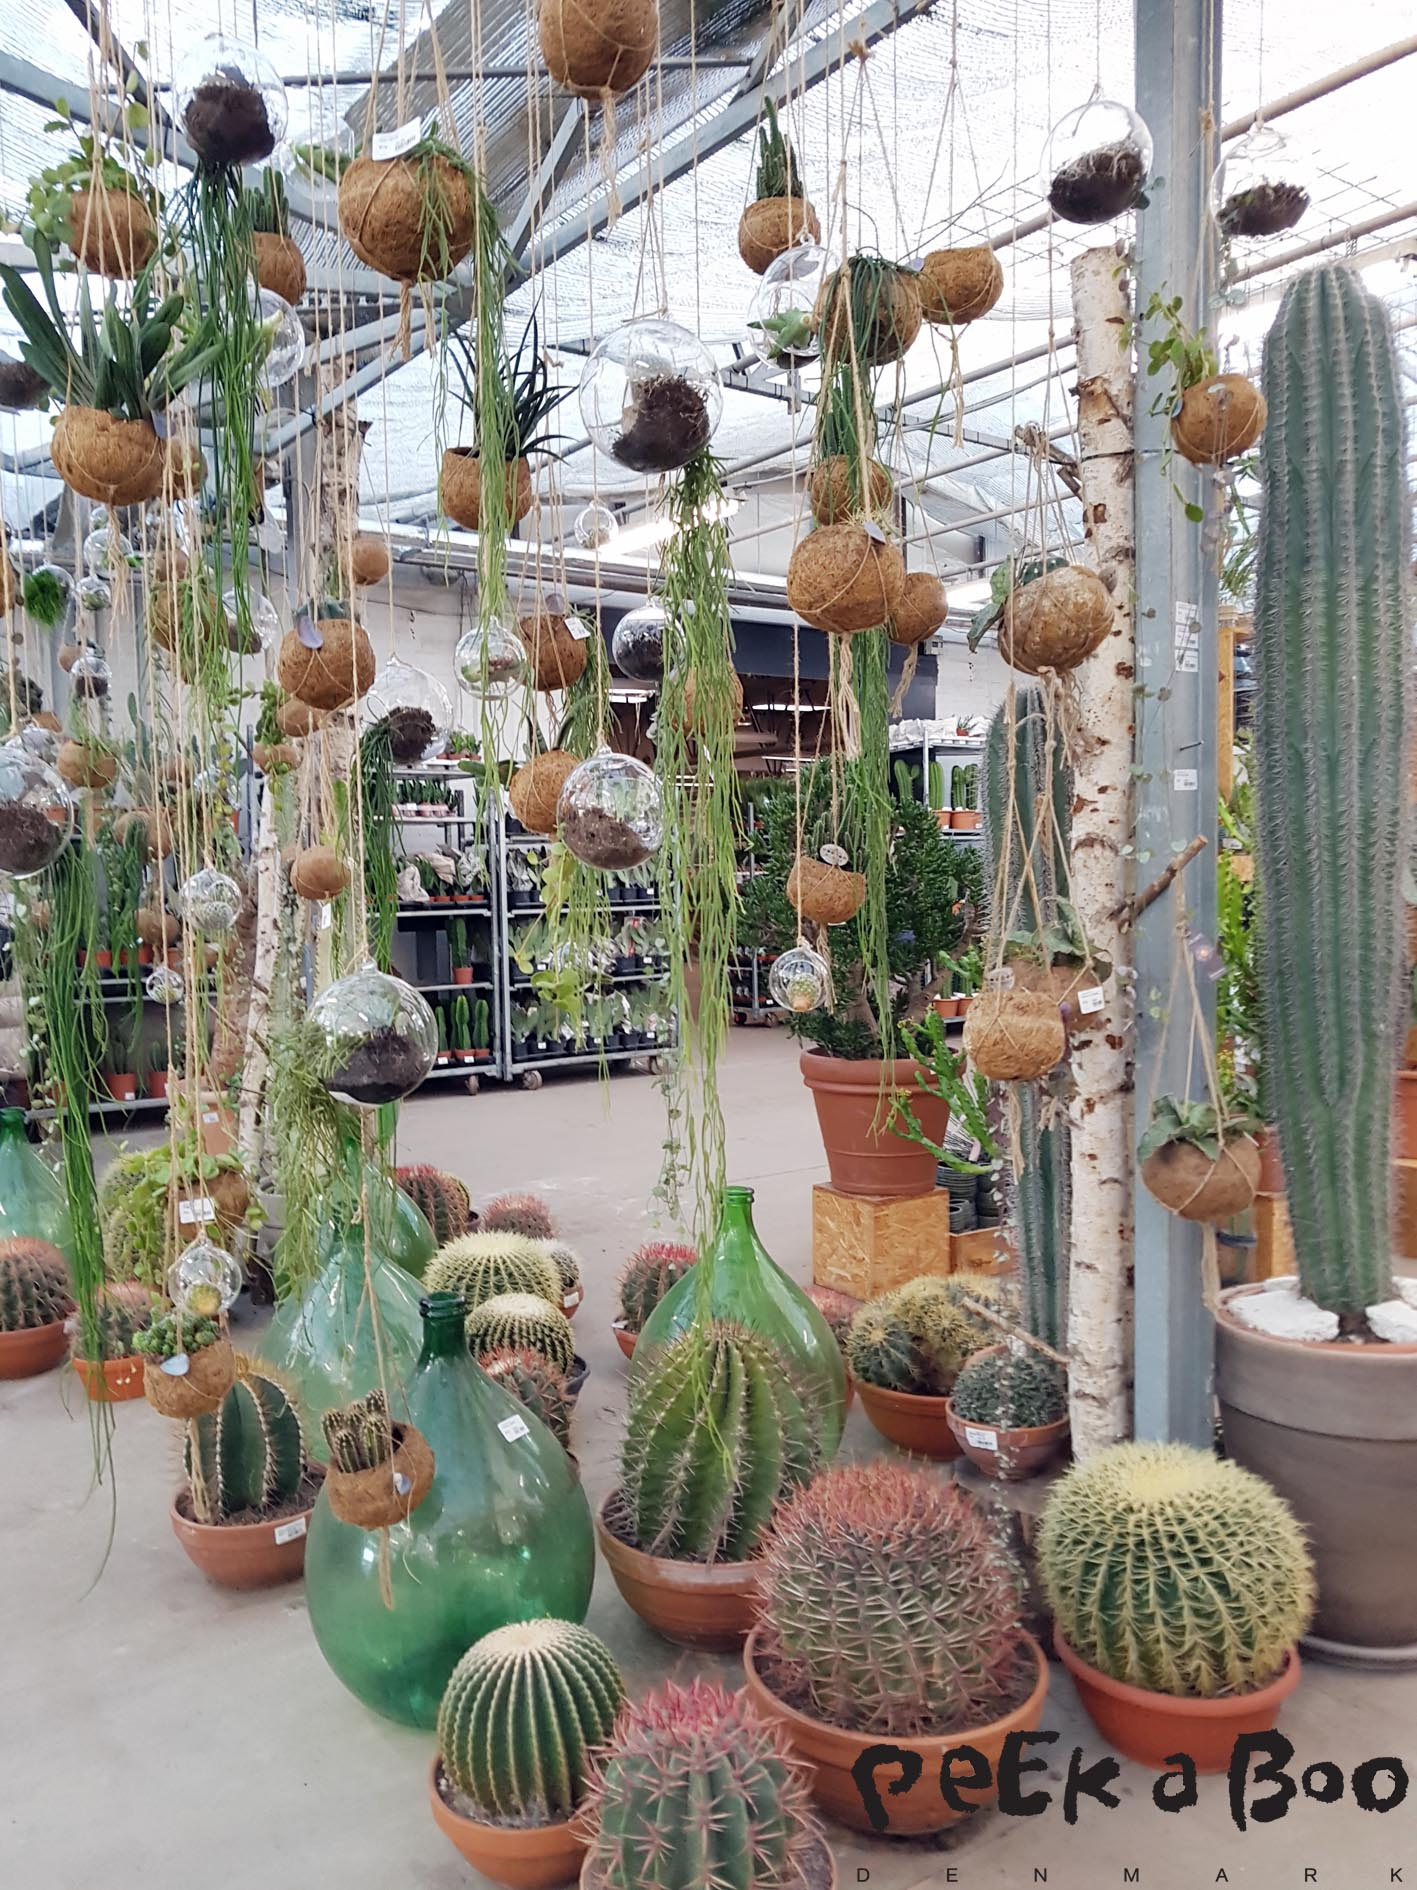 Lot's of hanging plants and giant cactus were the first sight meeting me when I entered JH engros Plants.